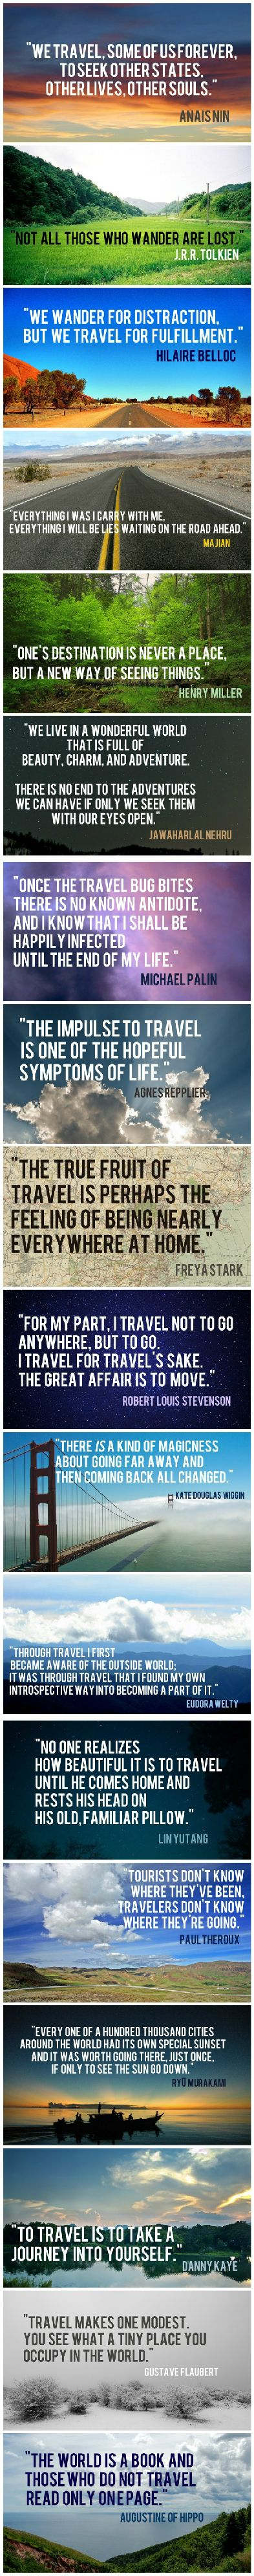 18 Travel Quotes to Feed Your Sense of Wanderlust   Whether you're an avid traveler who's never without a suitcase, or a homebody searching for a momentary escape from your daily routine, these quotes will speak to your sense of wanderlust.  #wanderlust